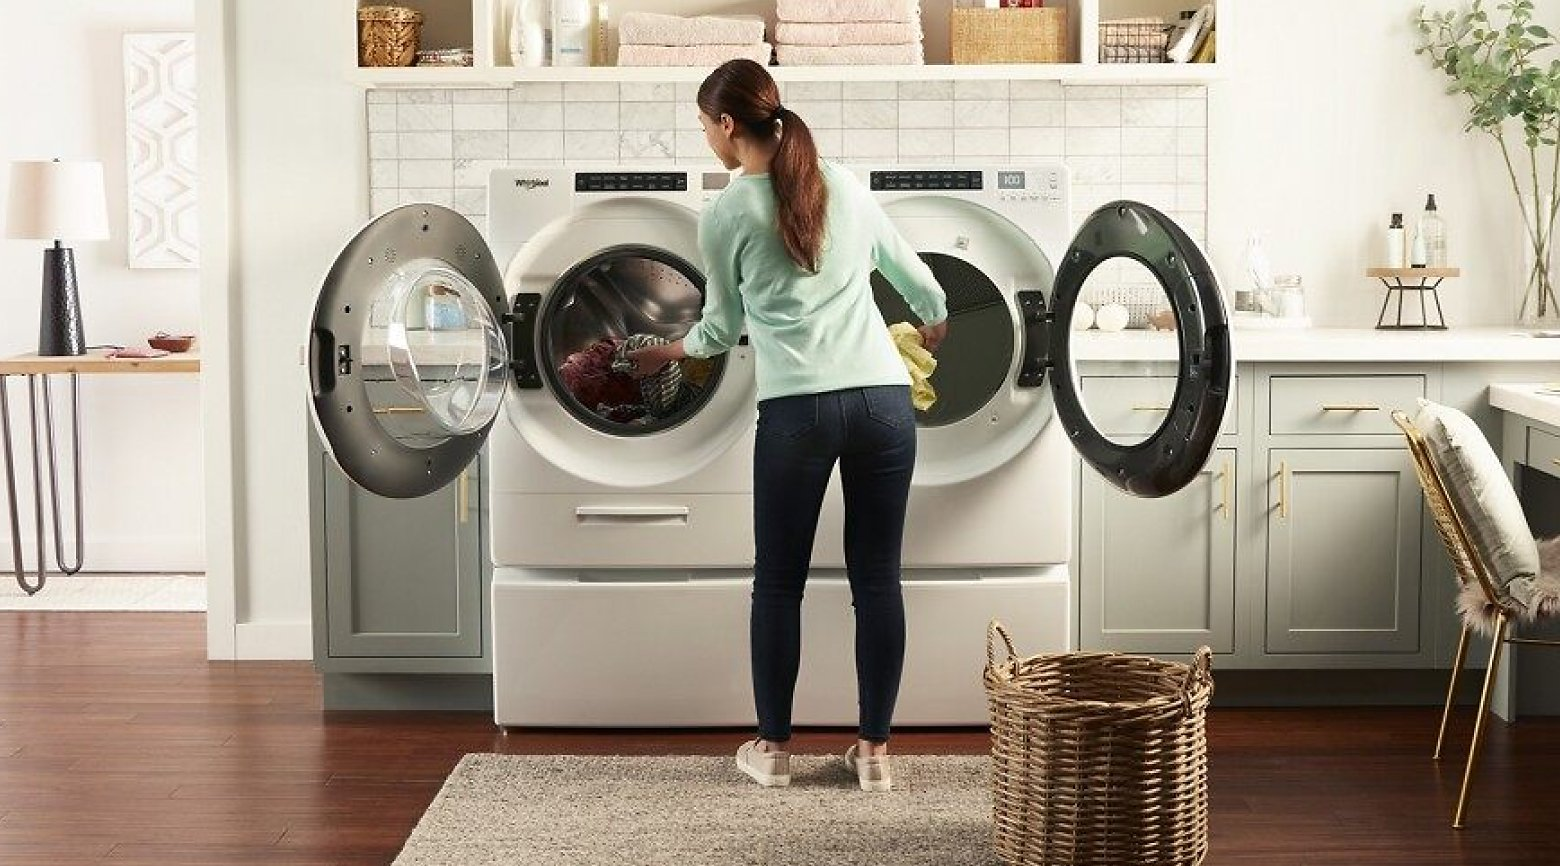 A woman transferring laundry from a front load washer to a front load dryer.